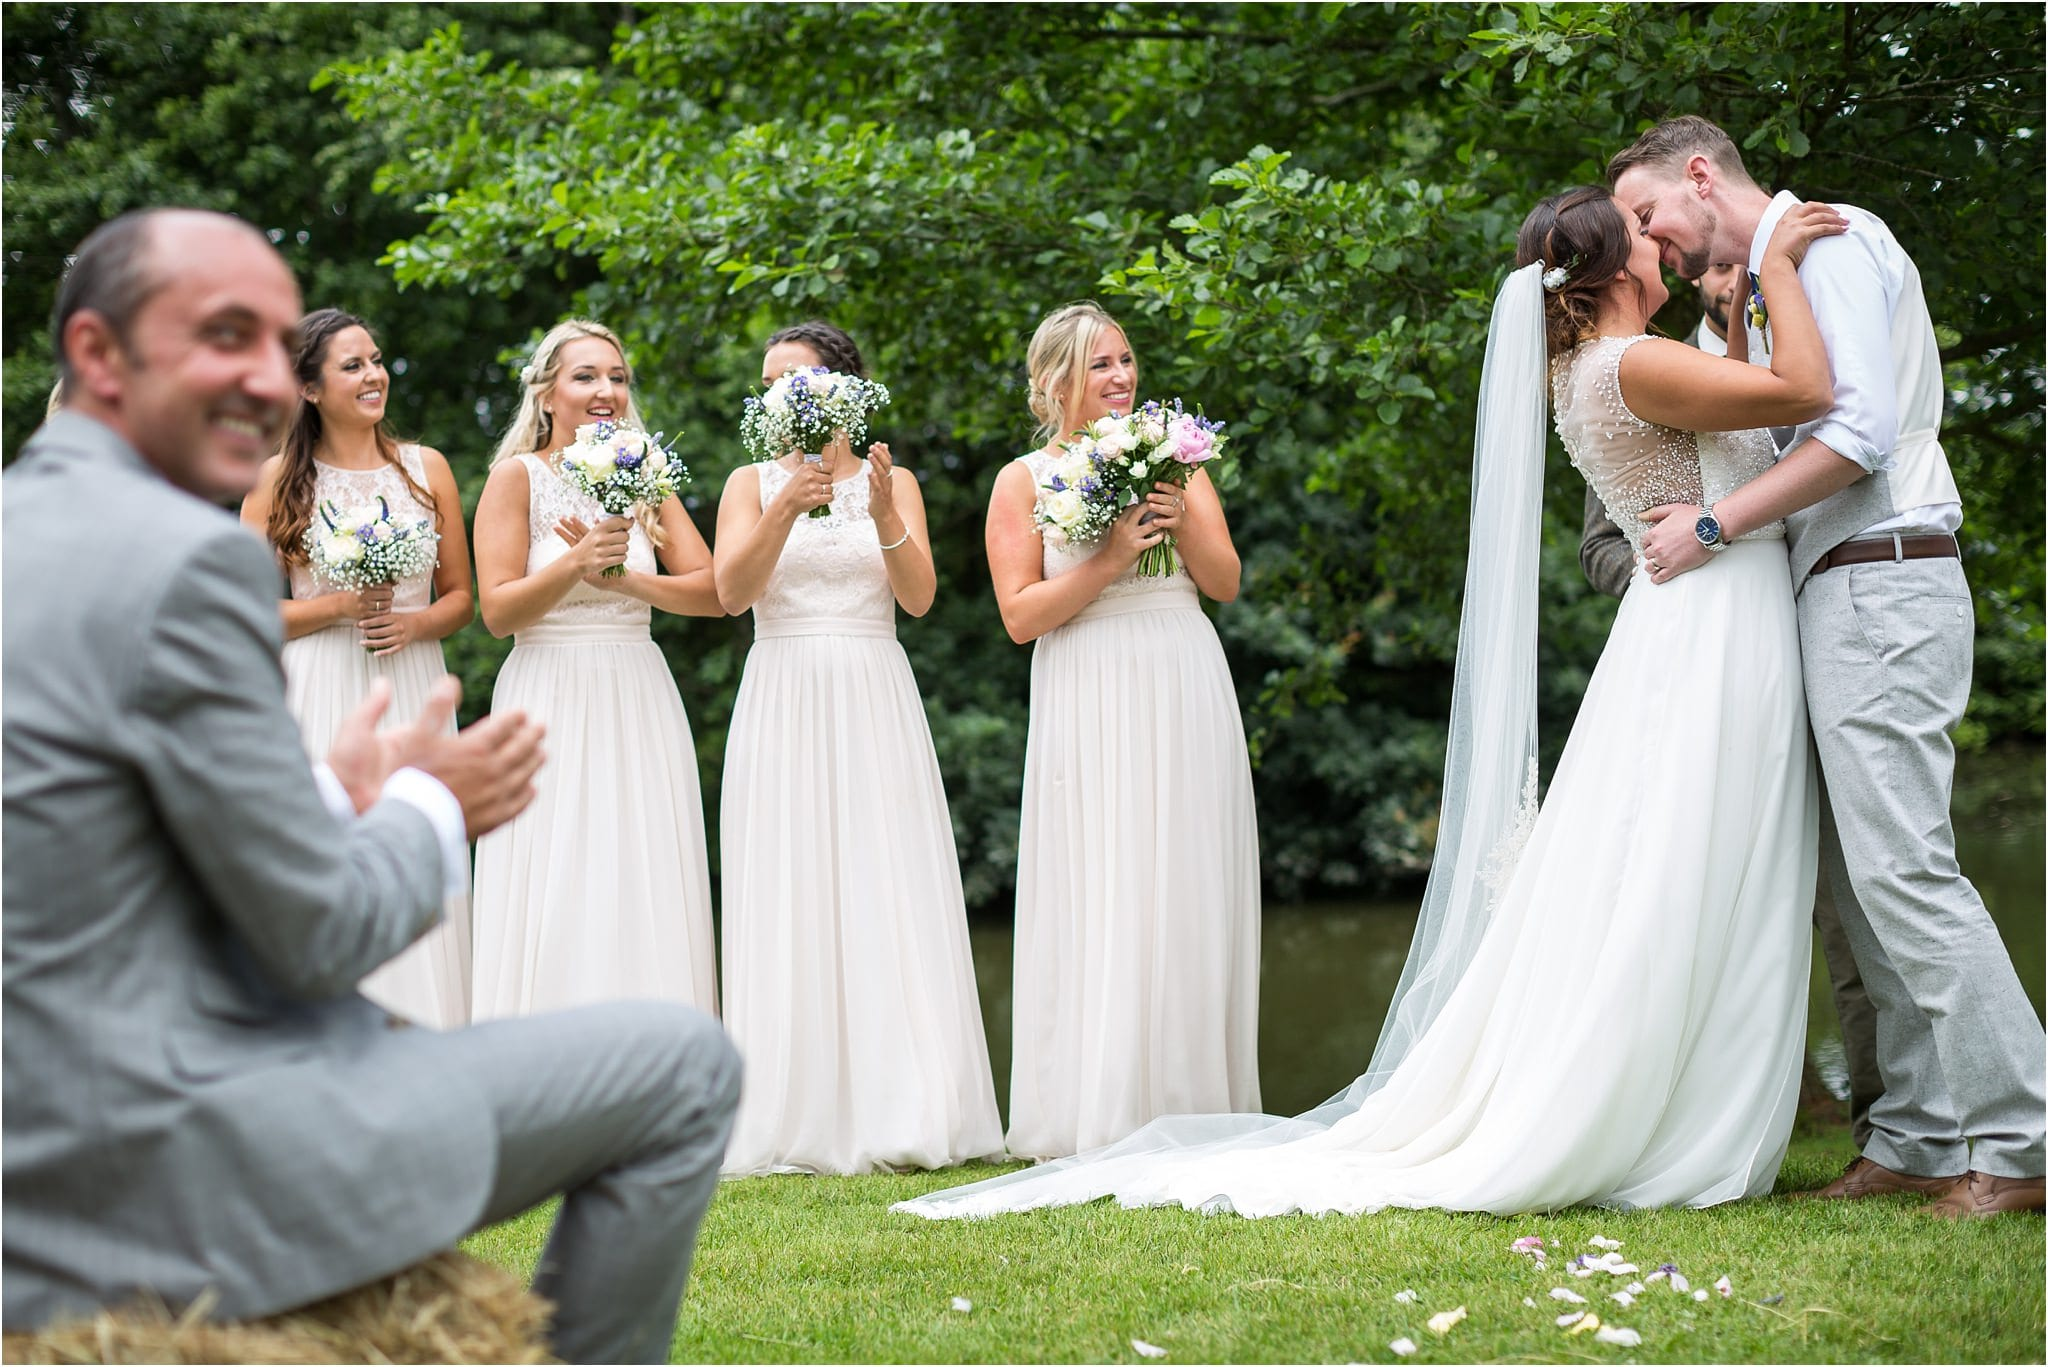 Couple's first kiss as husband and wife. Bridesmaids clapping whilst father of the bride looks away and smiles.